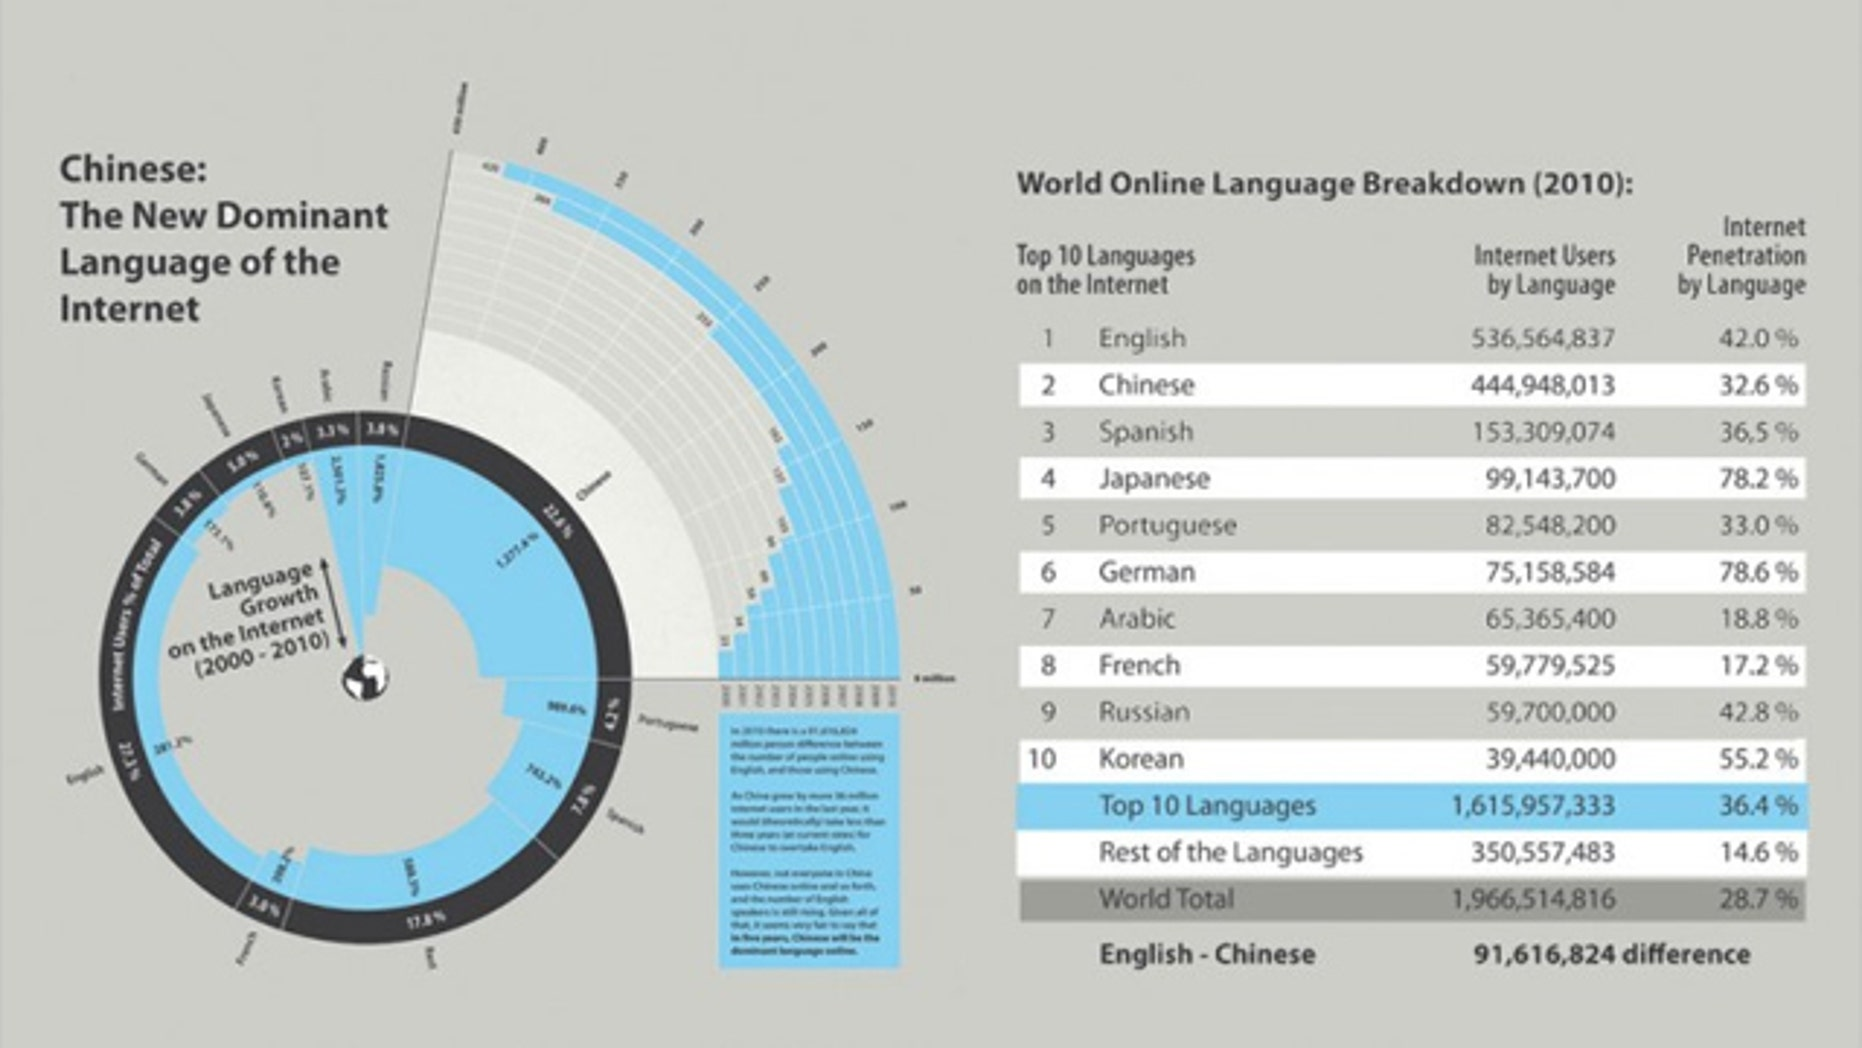 English is the most widely used language on the Internet, but it could be less than five years before Chinese becomes the dominant language, one site argues.